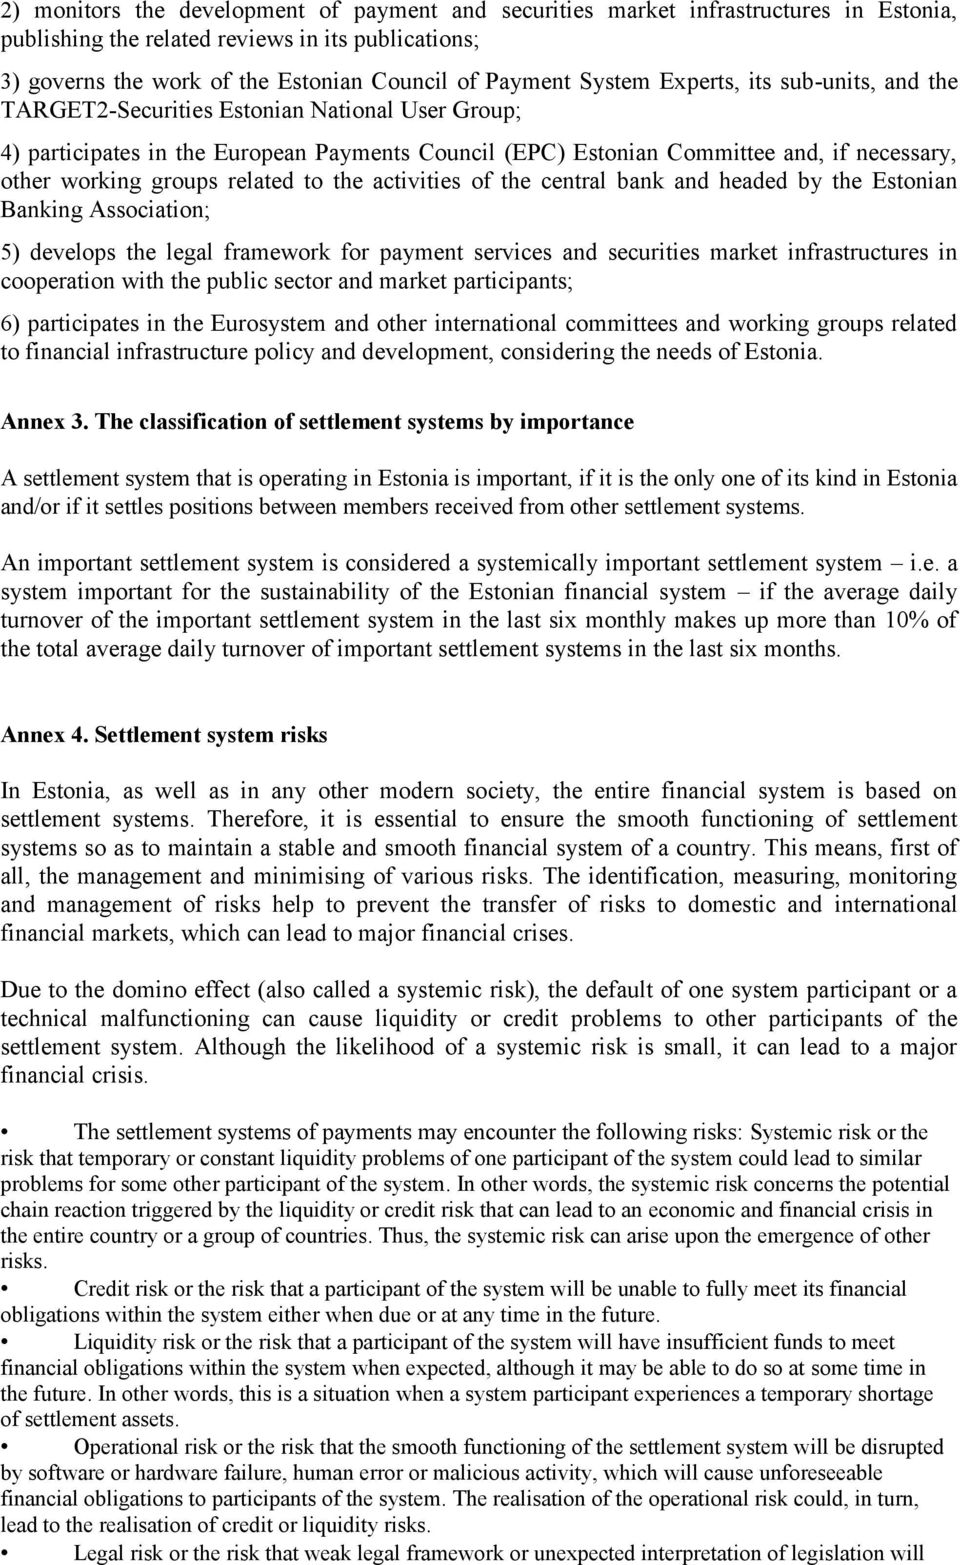 groups related to the activities of the central bank and headed by the Estonian Banking Association; 5) develops the legal framework for payment services and securities market infrastructures in